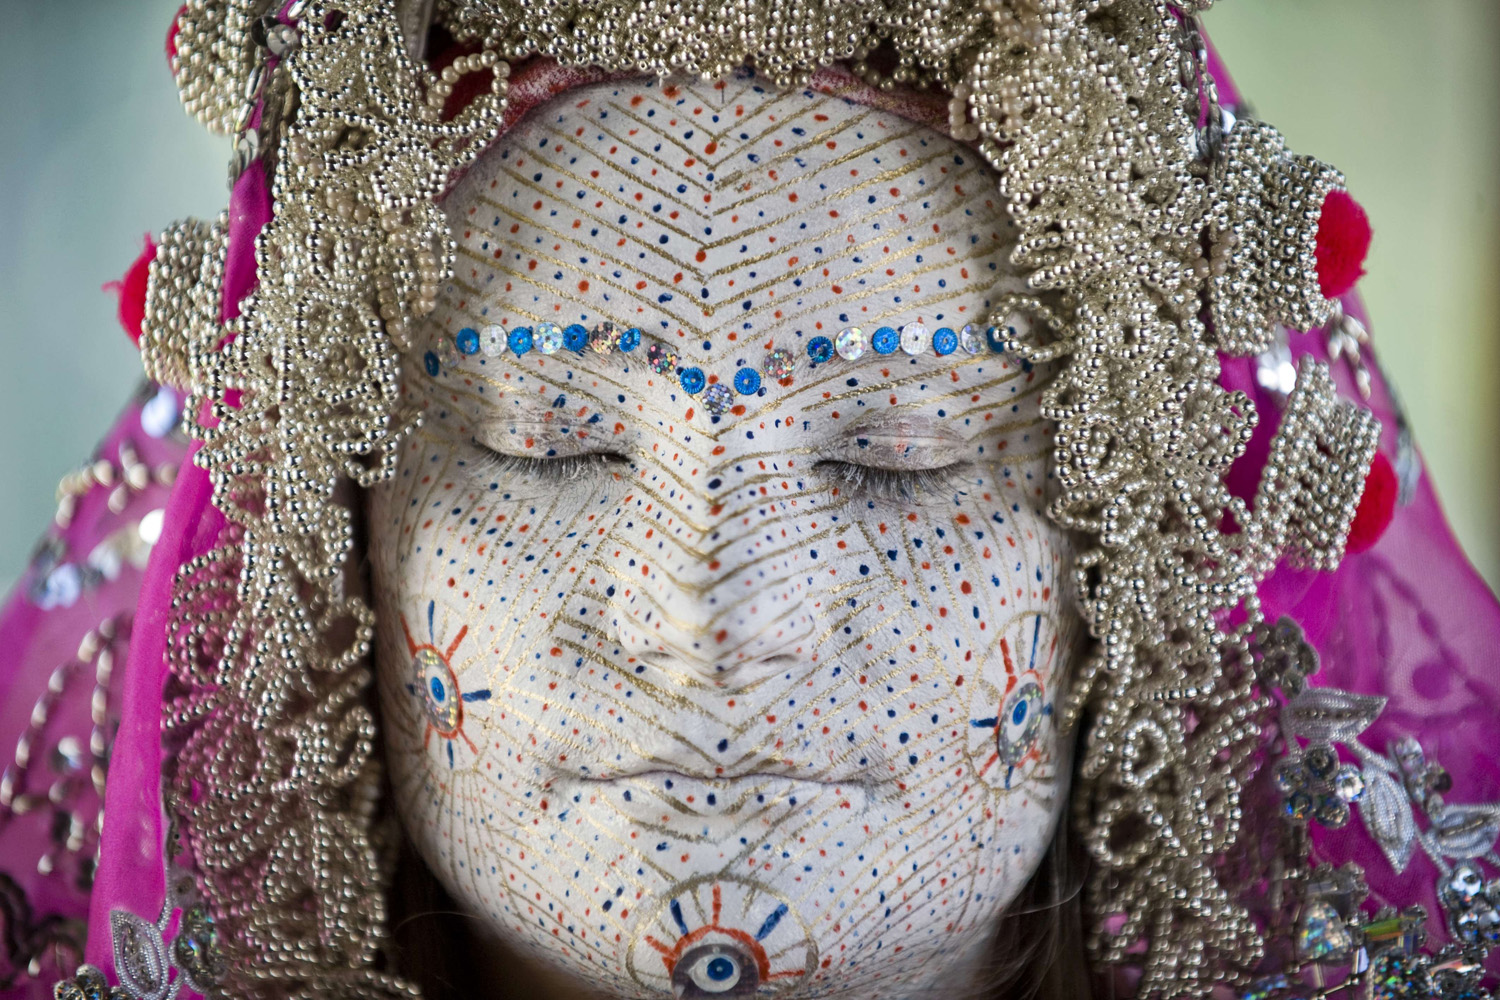 Jul. 2, 2014. Kosovar Bosnian woman Arleta Sahiti poses after her face was painted by a woman during a presentation of the traditional wedding ceremony of Bosnian women from Zhupa region at the Ethnological Museum in Pristina.